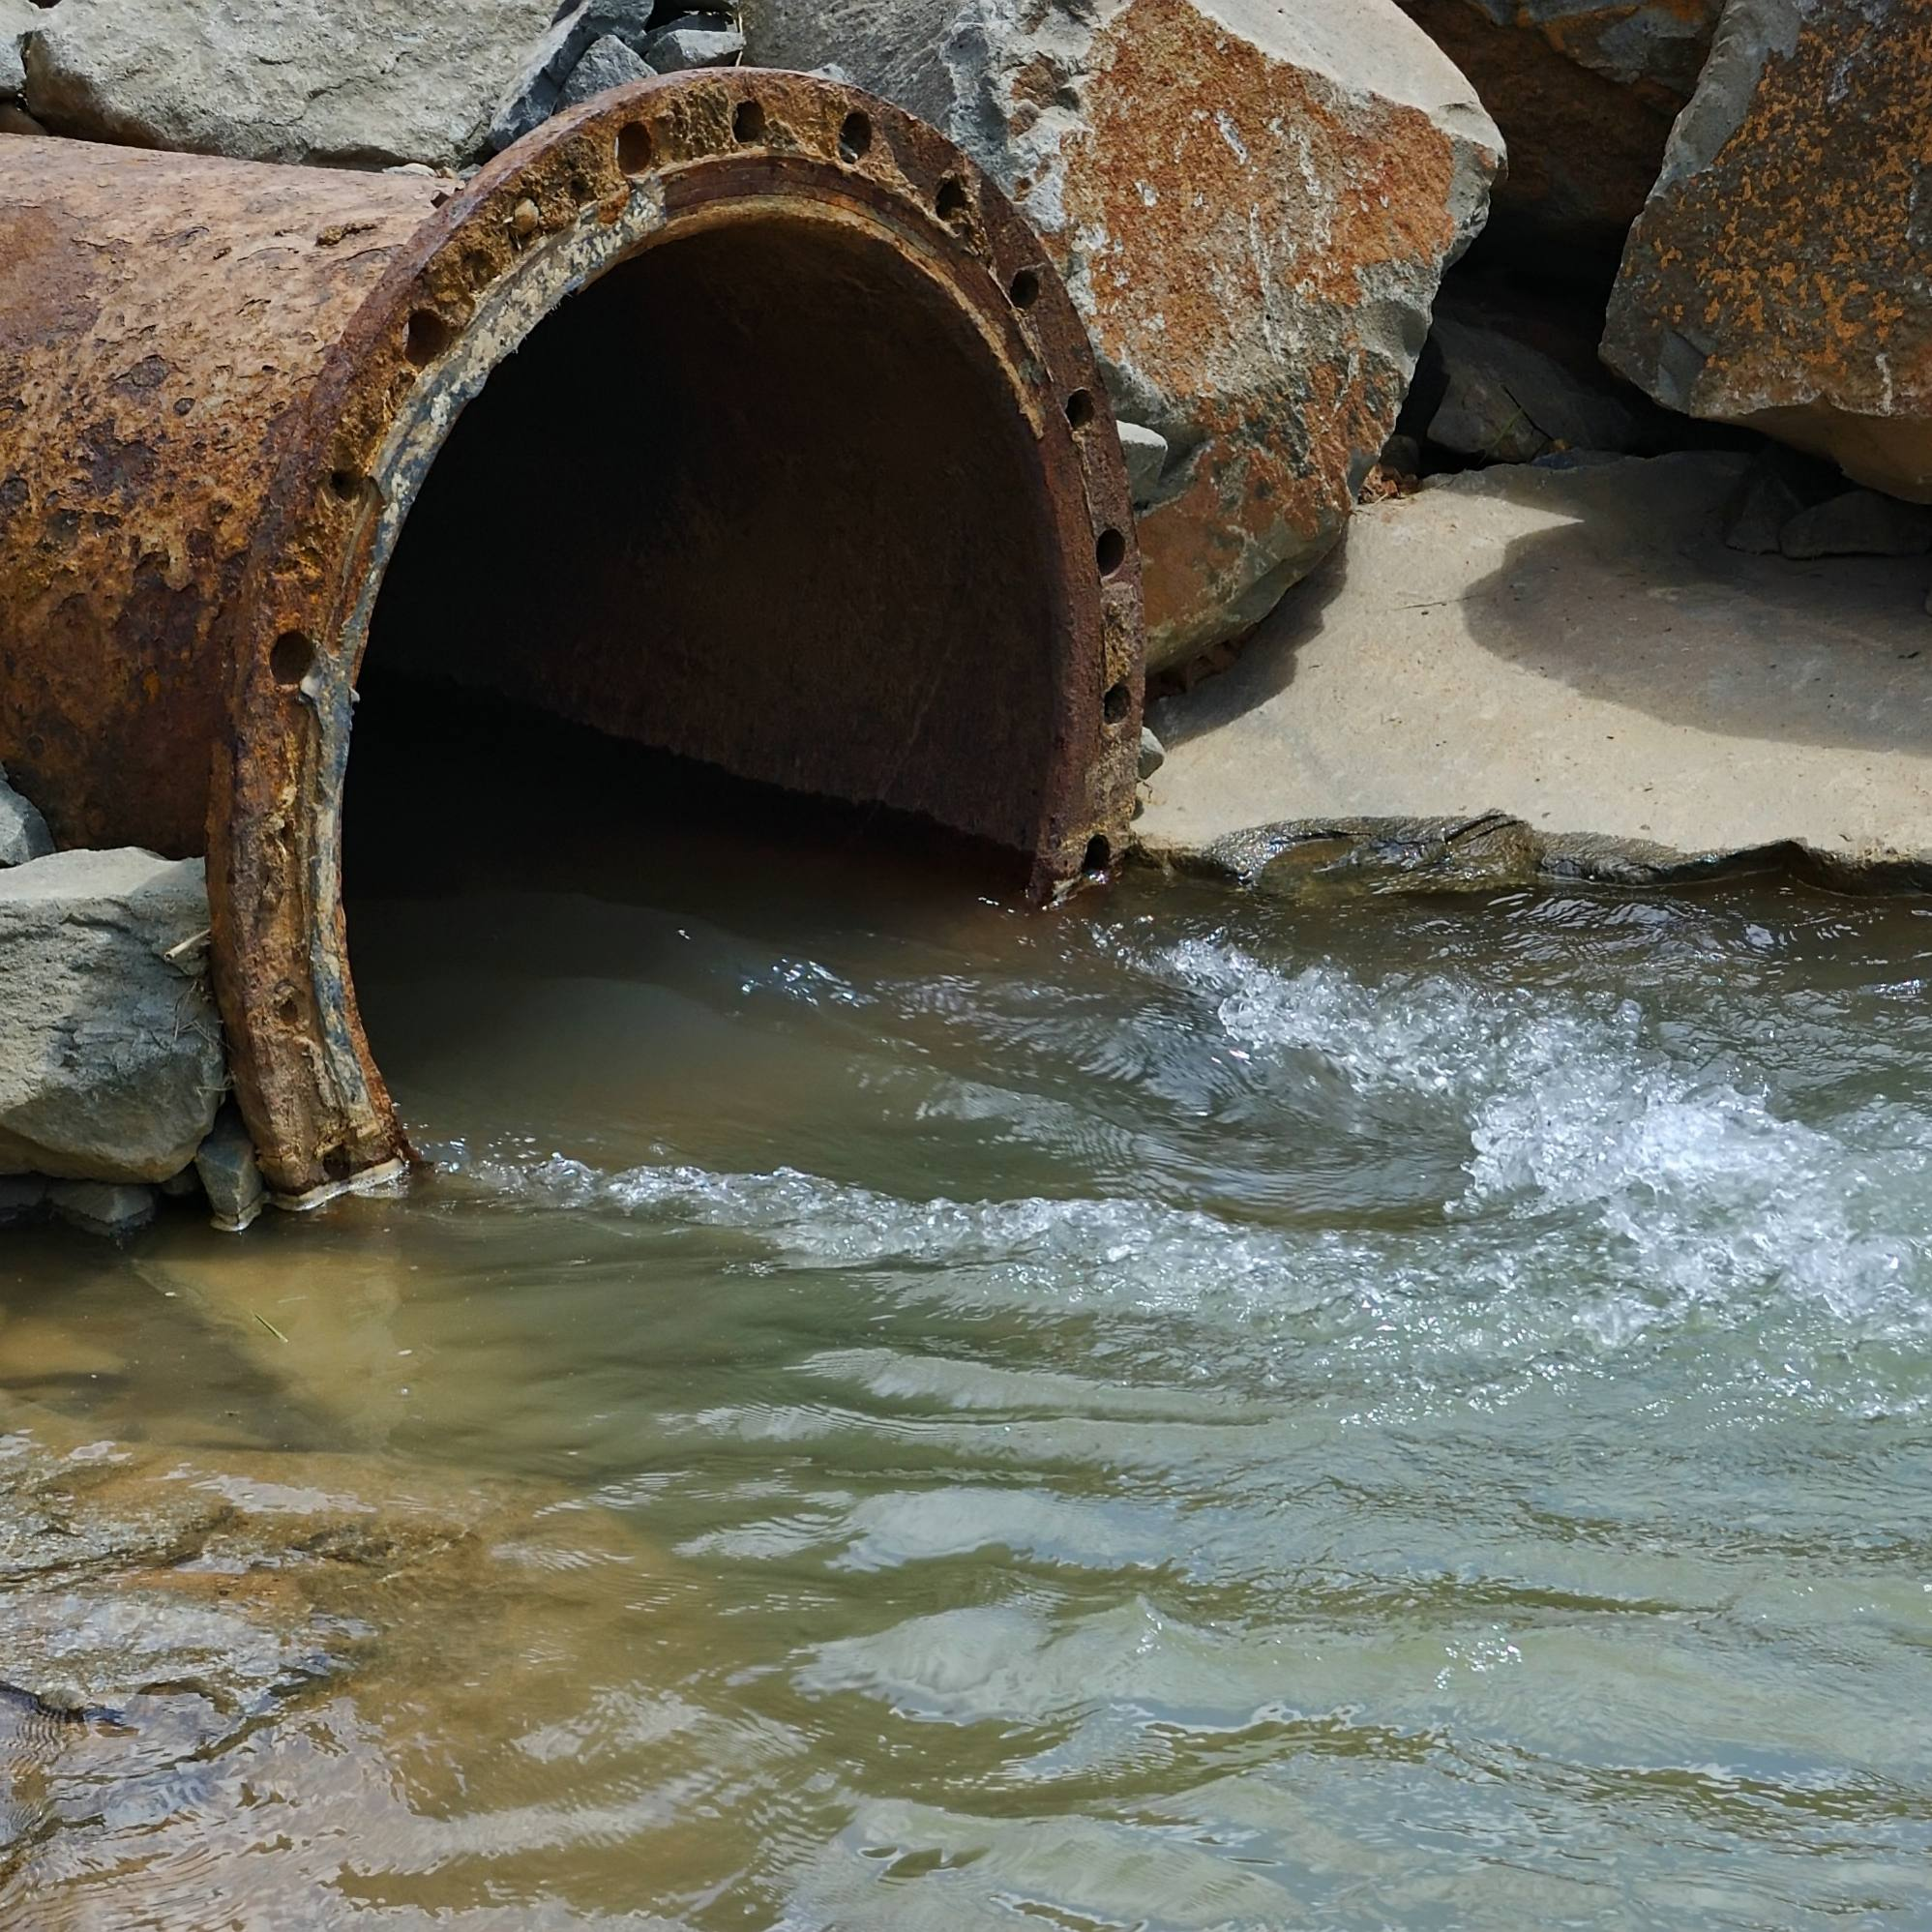 water pipe with rushing contaminated waste water from a street or factory